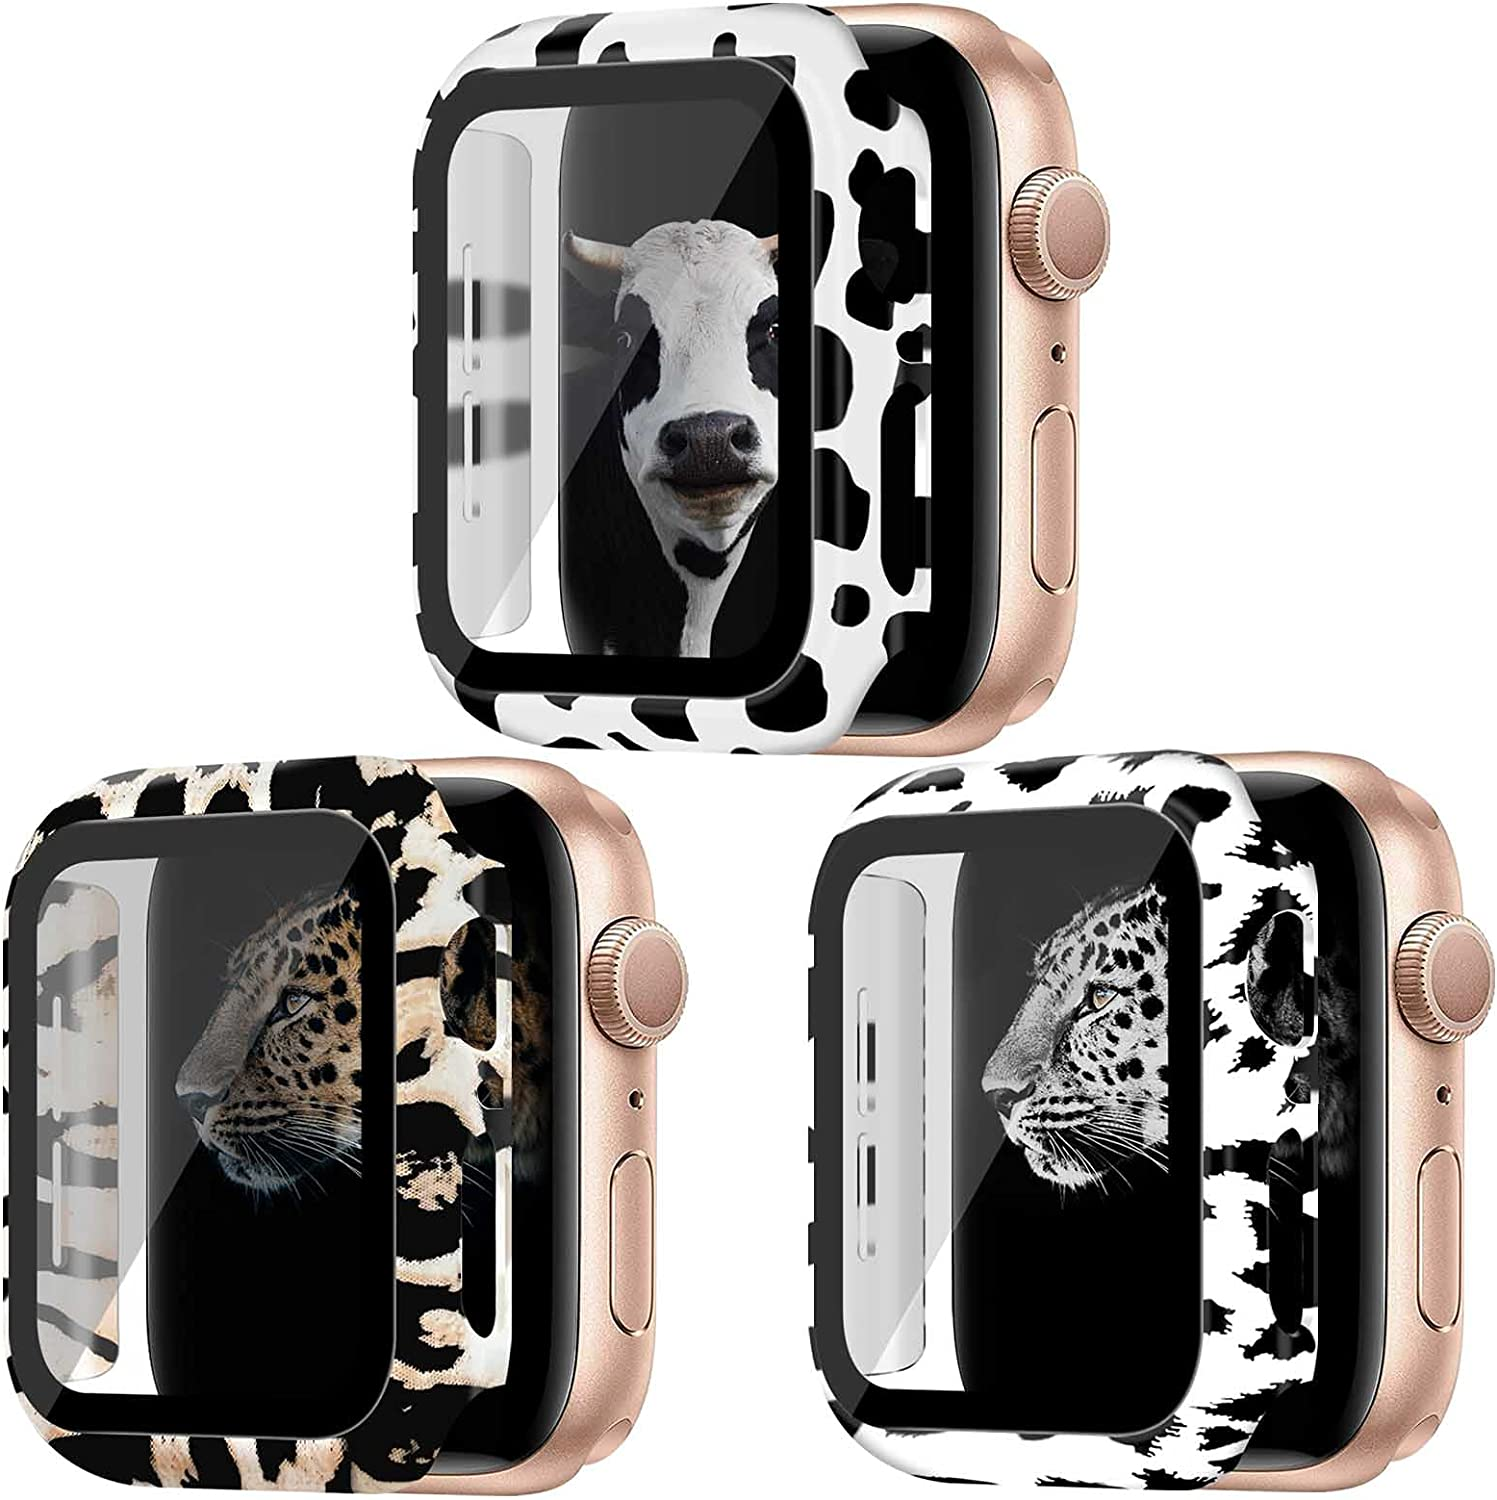 Kakurookie [3Pack] Leopard + Cow + Snow Leopard Pattern Case Compatible with Apple Watch Series 6/5/4/SE 40mm with Tempered Glass Screen Protector, Full Cover Ultra-Thin Bumper Protective Case